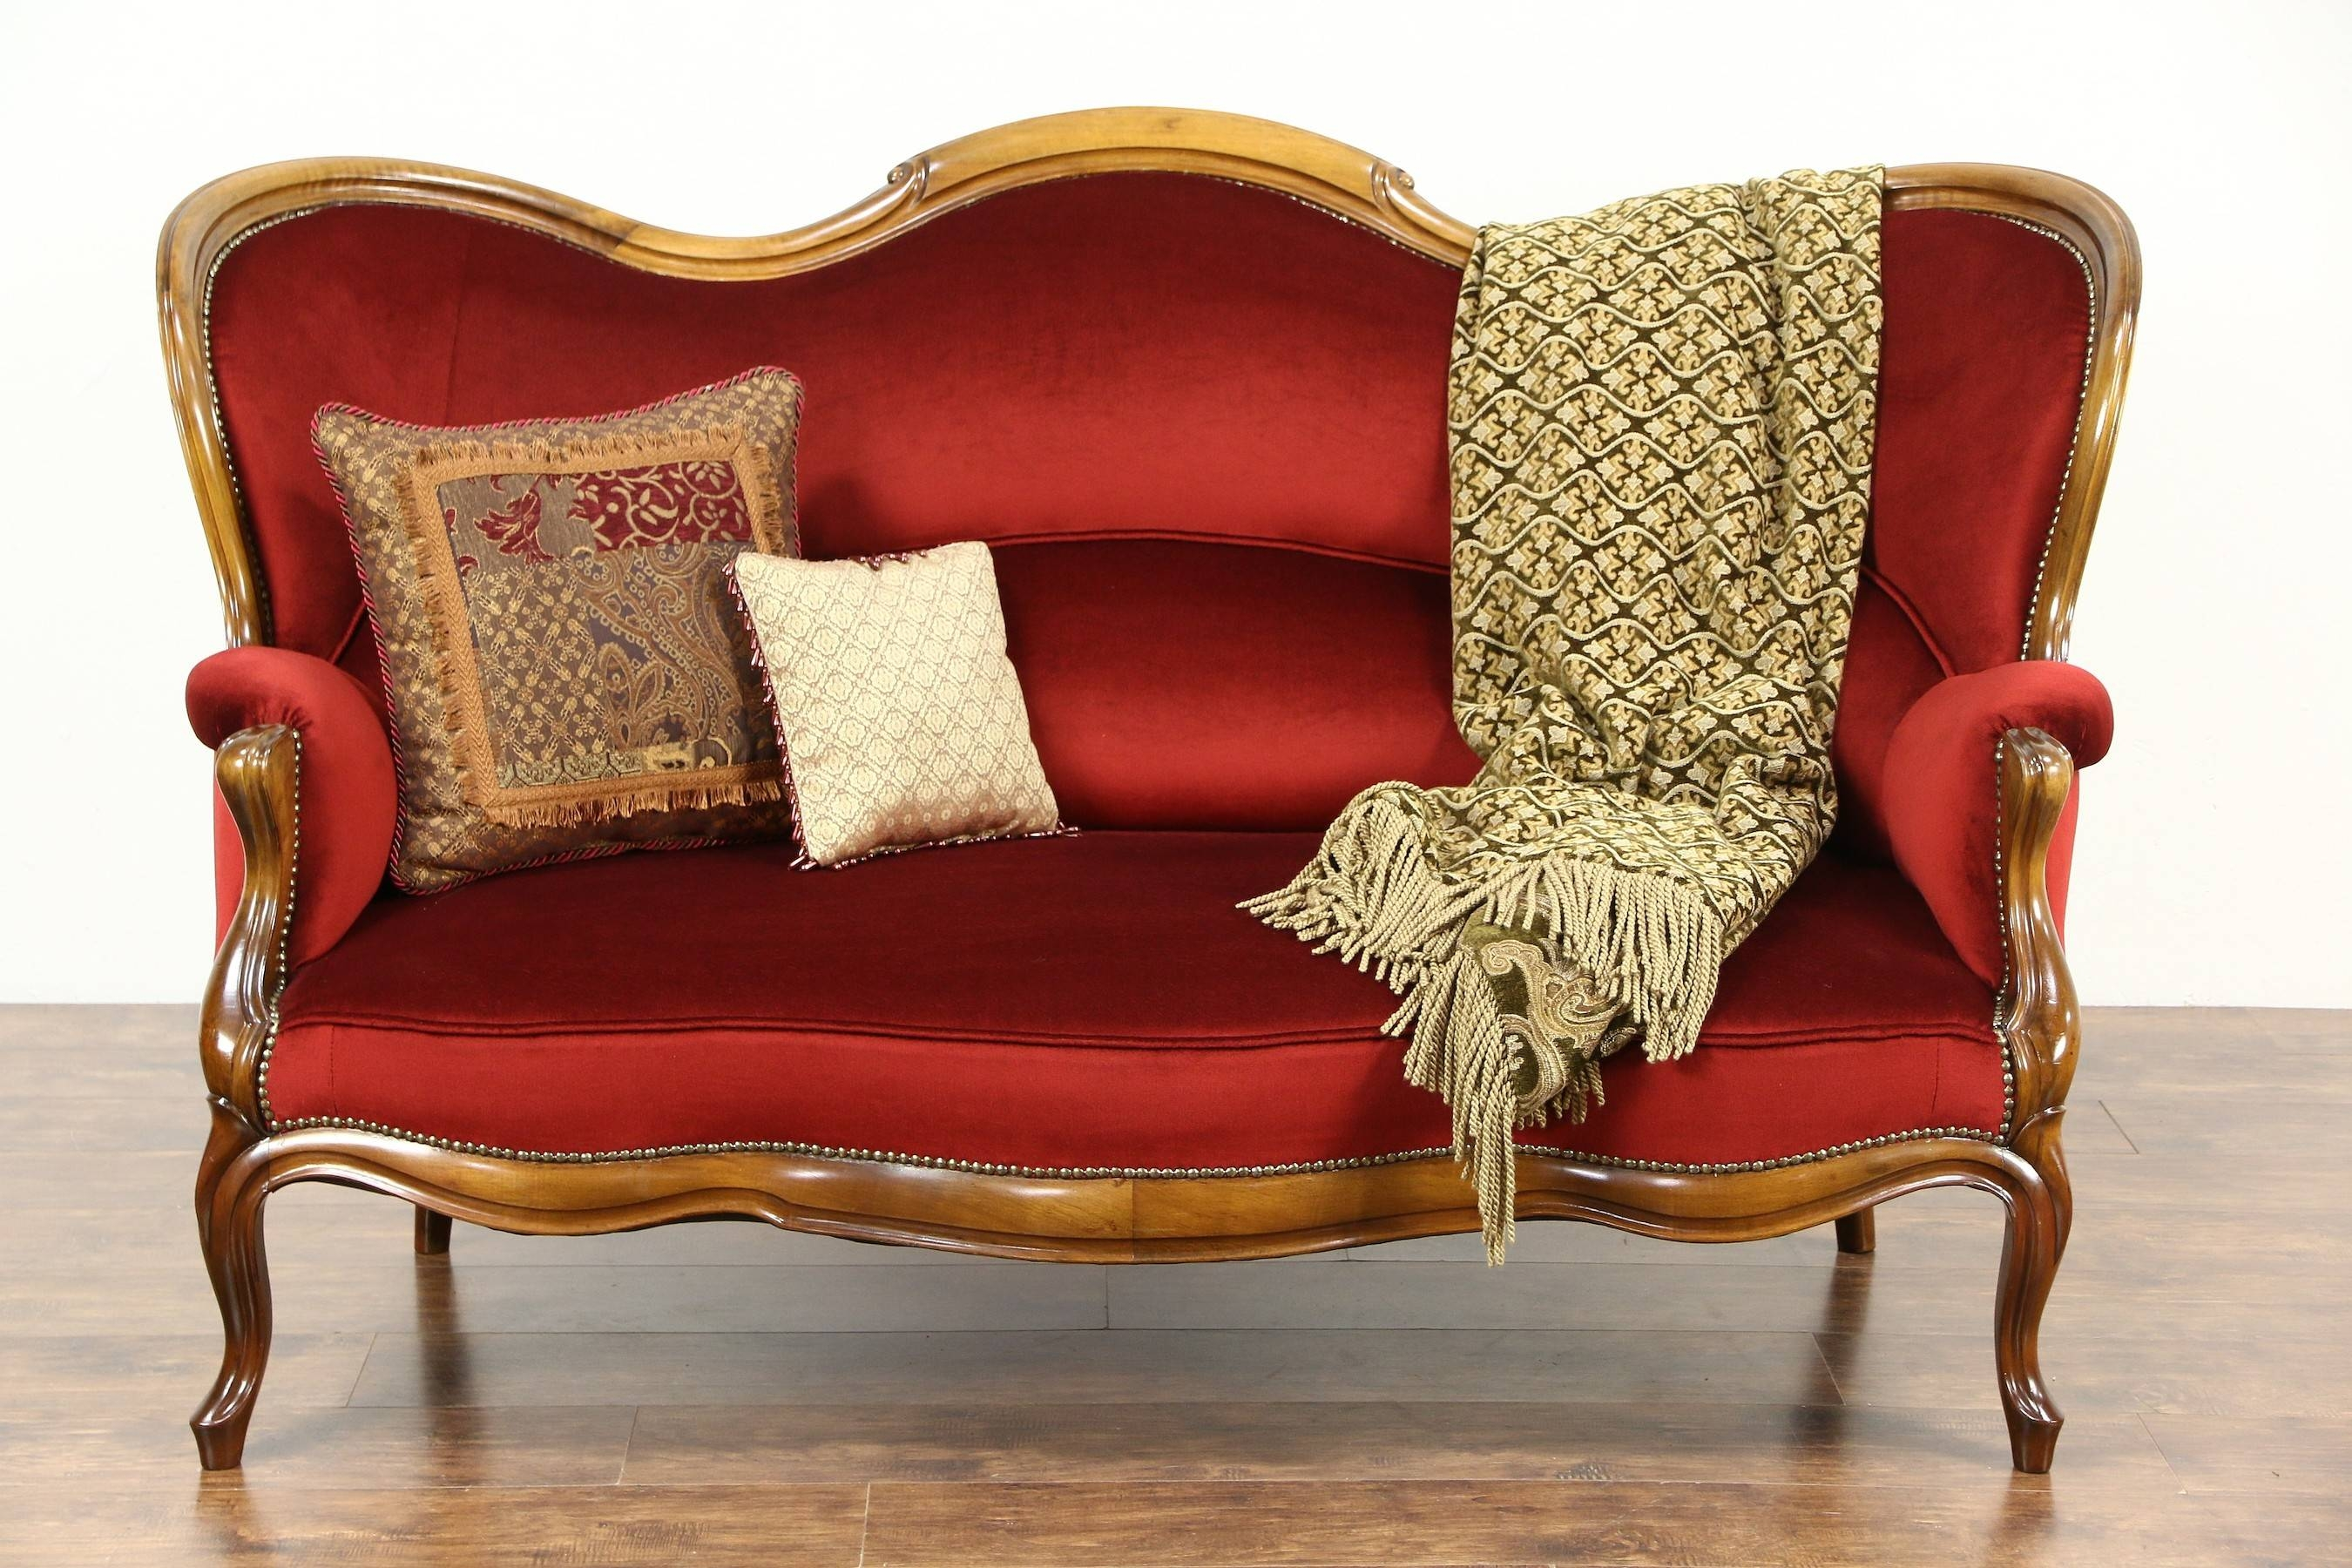 Victorian 1890's Antique Loveseat, New Red Velvet Upholstery in Antique Sofa Chairs (Image 29 of 30)